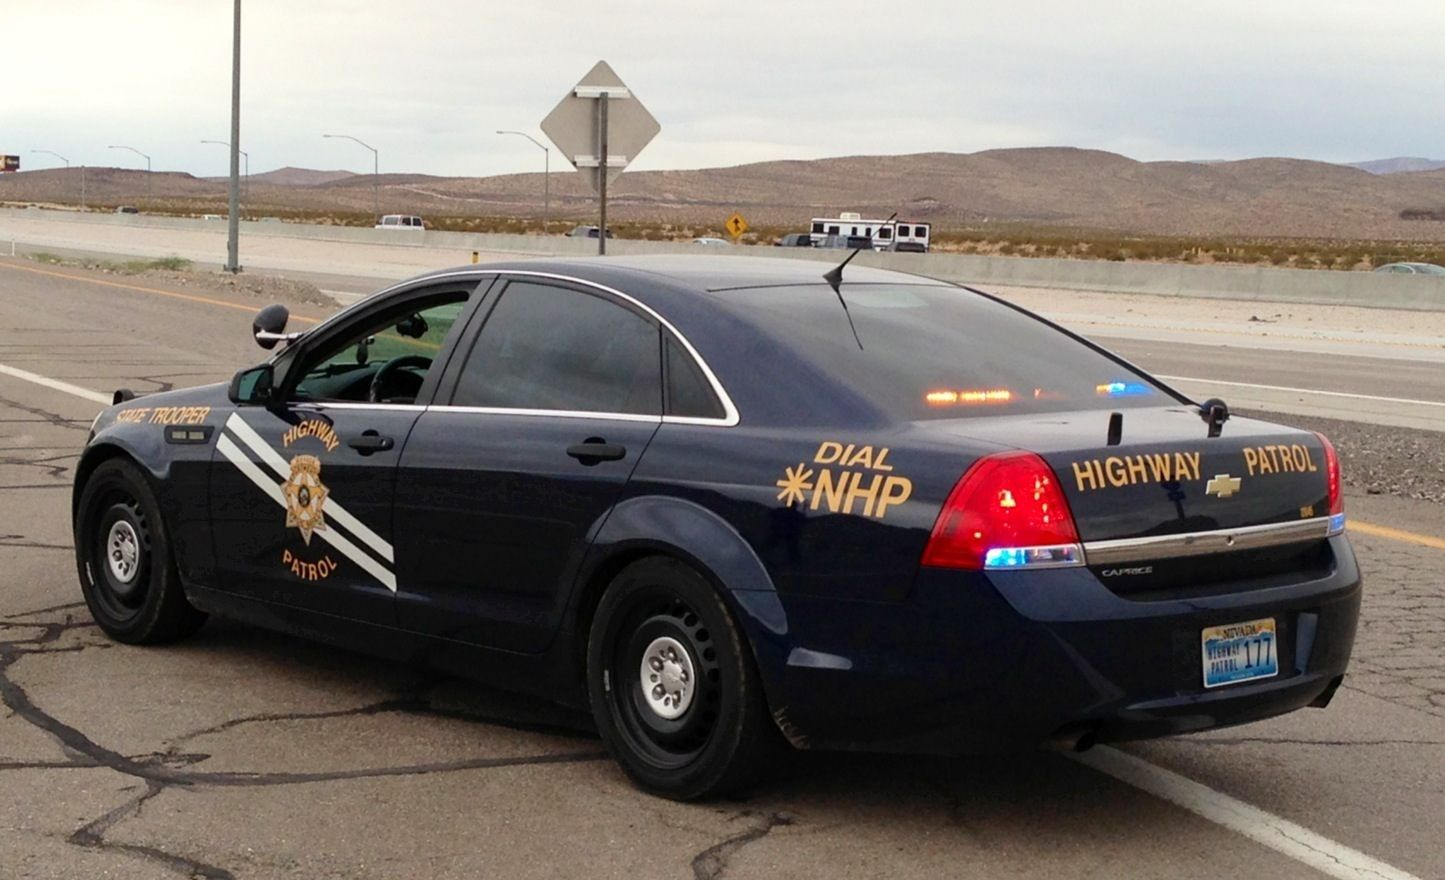 Pin By Jason S On Chevy Caprice Ppv Police Cars Police Patrol